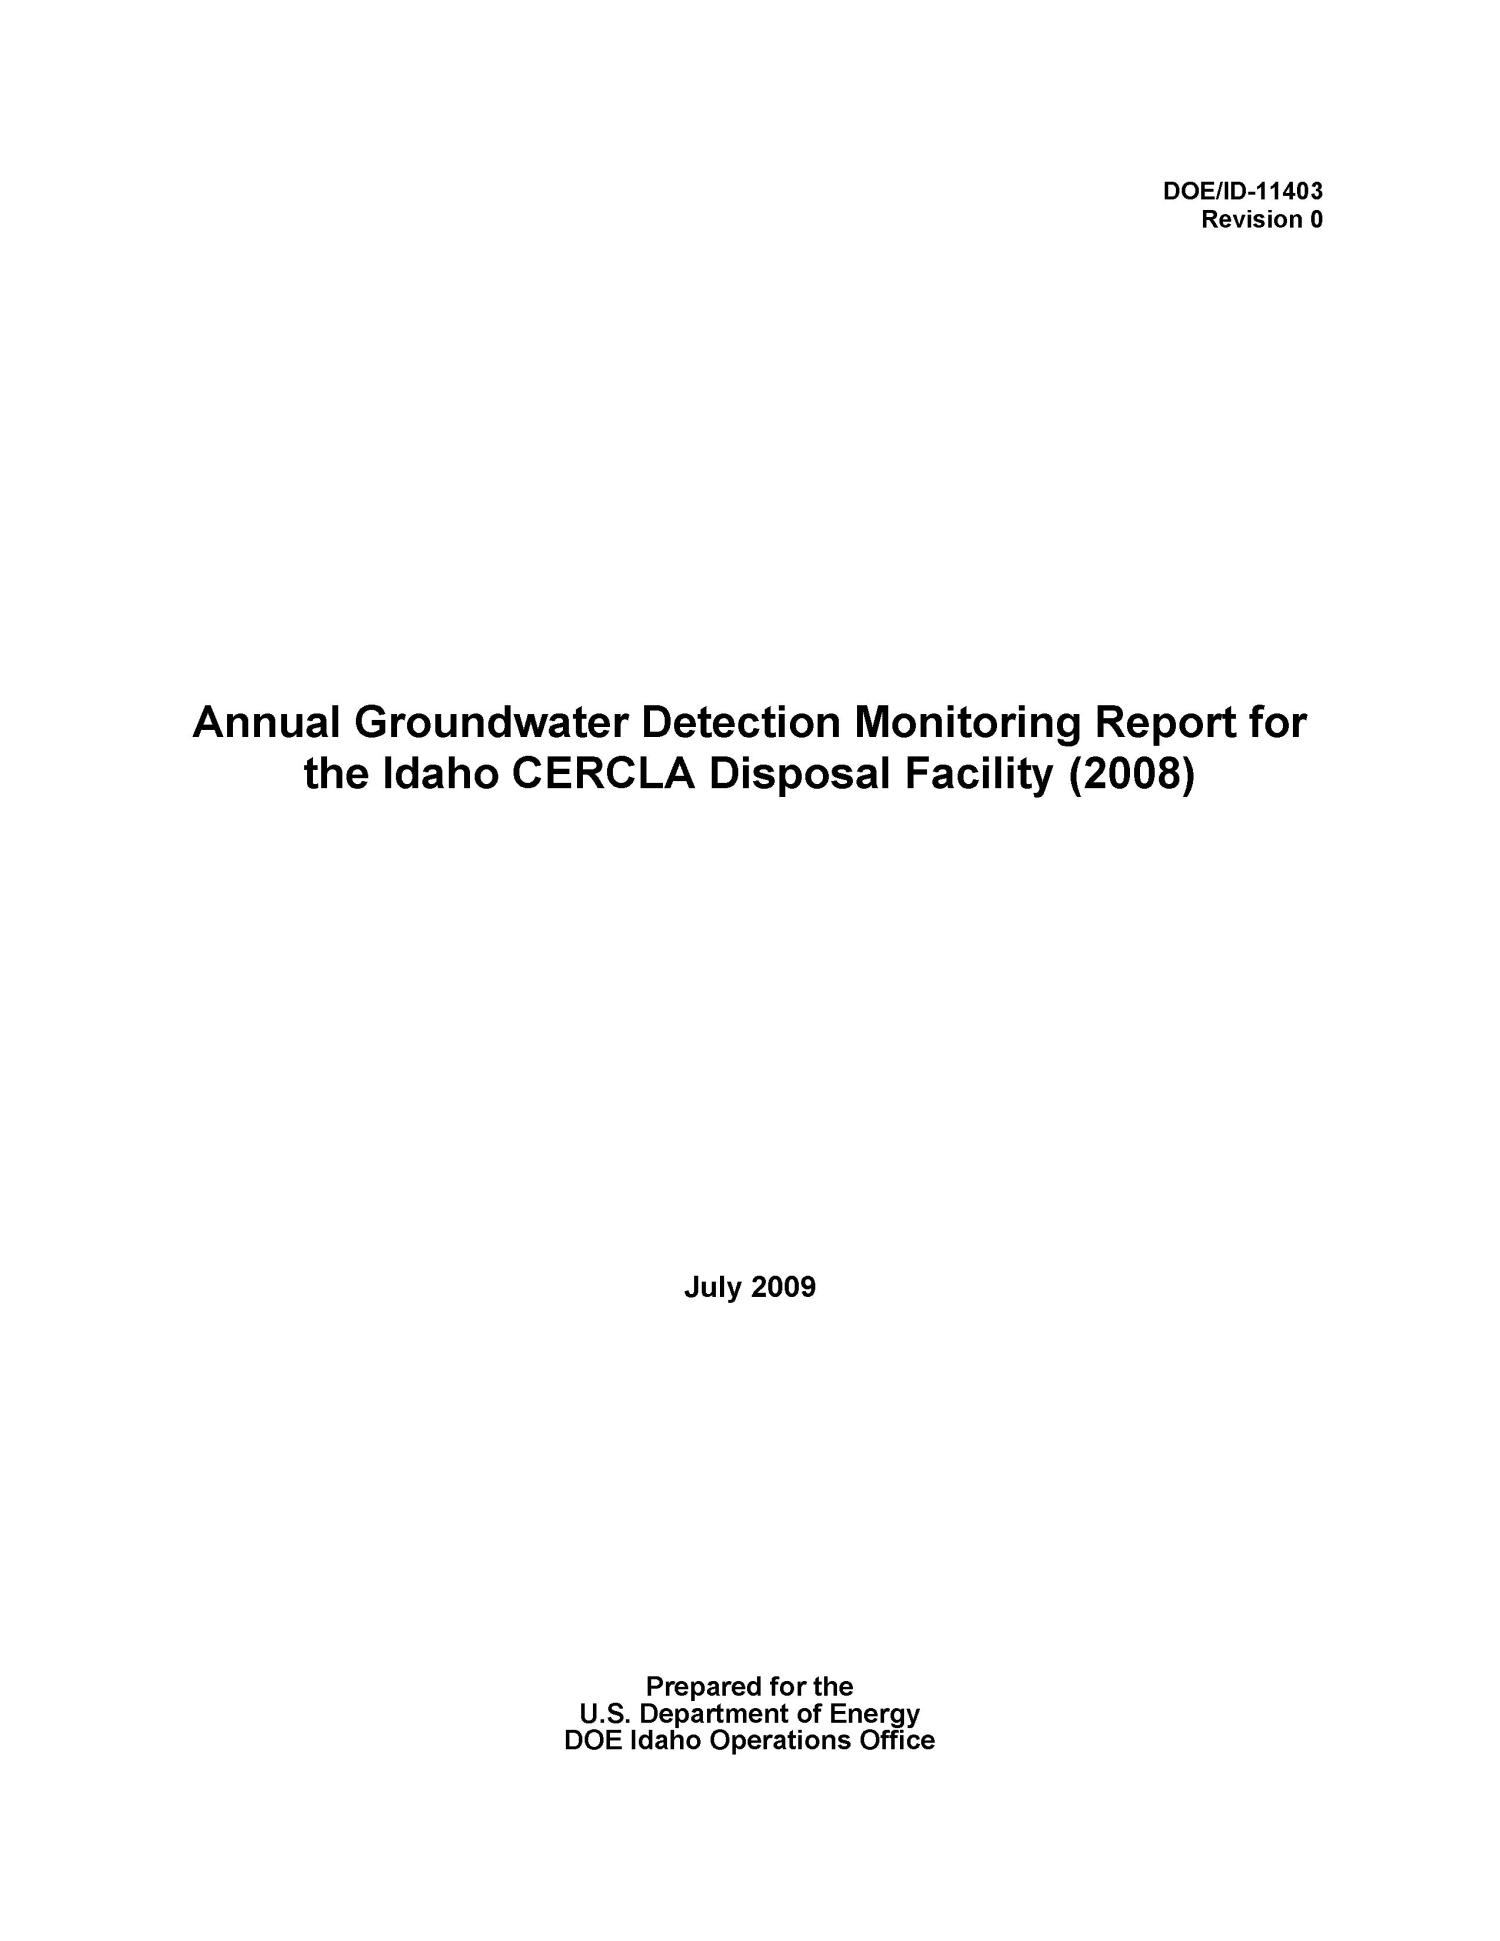 Annual Groundwater Detection Monitoring Report for the Idaho CERCLA Disposal Facility (2008)                                                                                                      [Sequence #]: 2 of 35